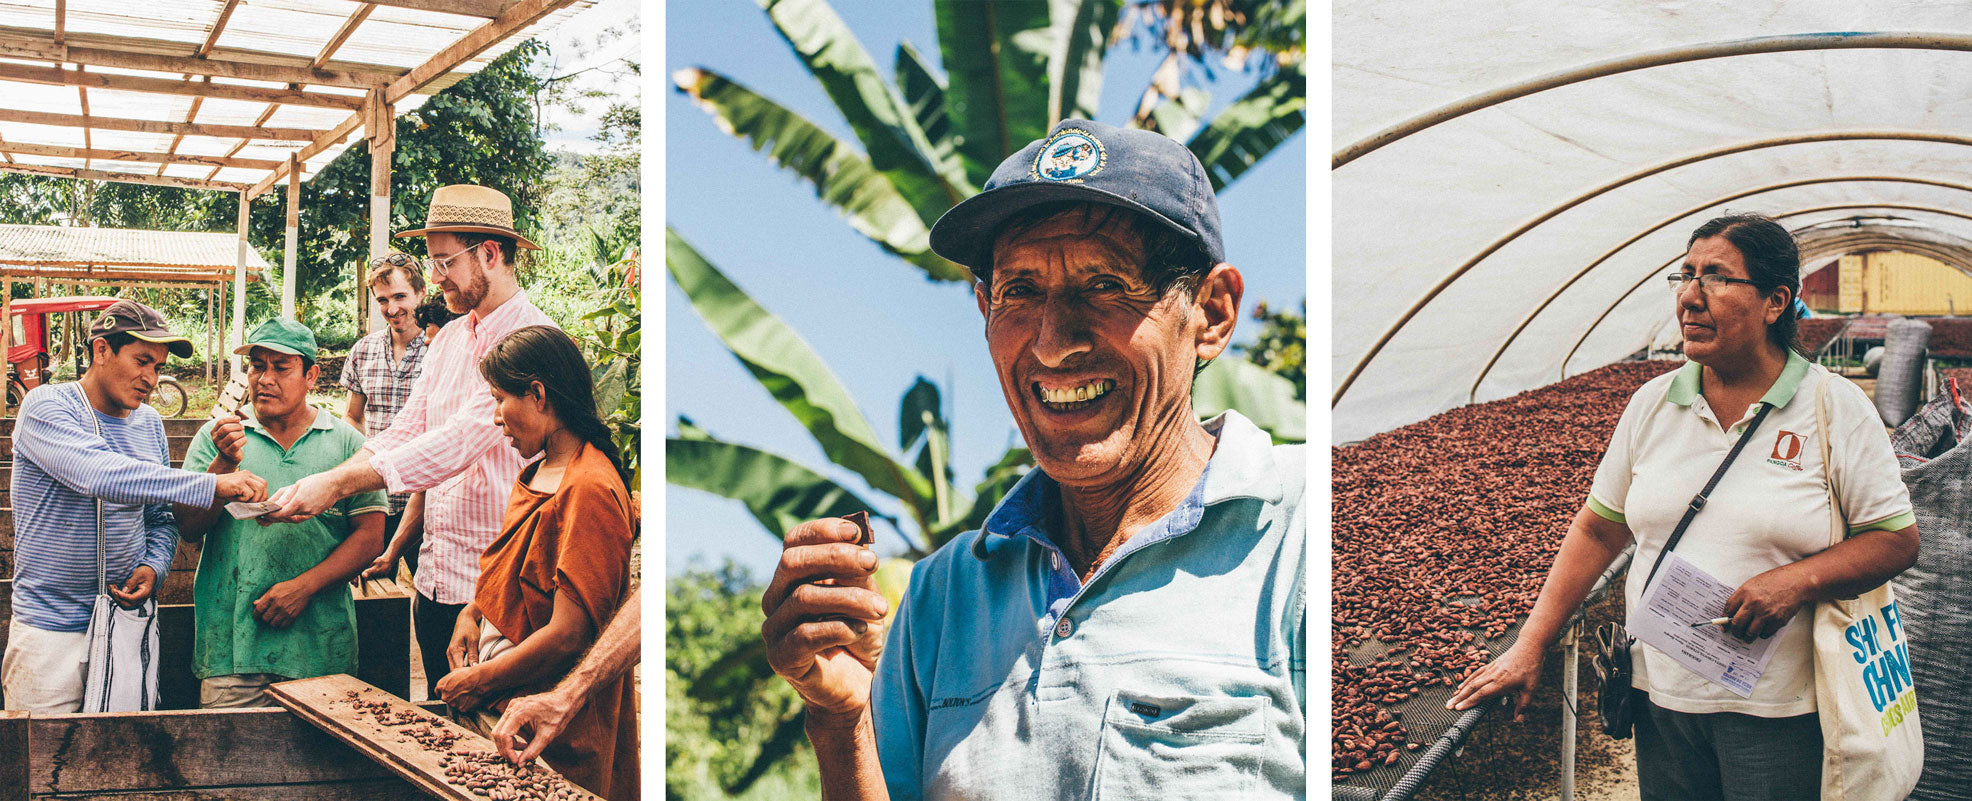 Head Chocolate Maker and co-founder Nate Hodge sharing chocolate with cocoa growers and producers in Peru. Baleriamo B'ordora Muñoz', a cacao farmer in Peru, enjoying a Raaka Chocolate bar. A portrait Esperanza Dionisio, cooperative director of CAC Pangoa.